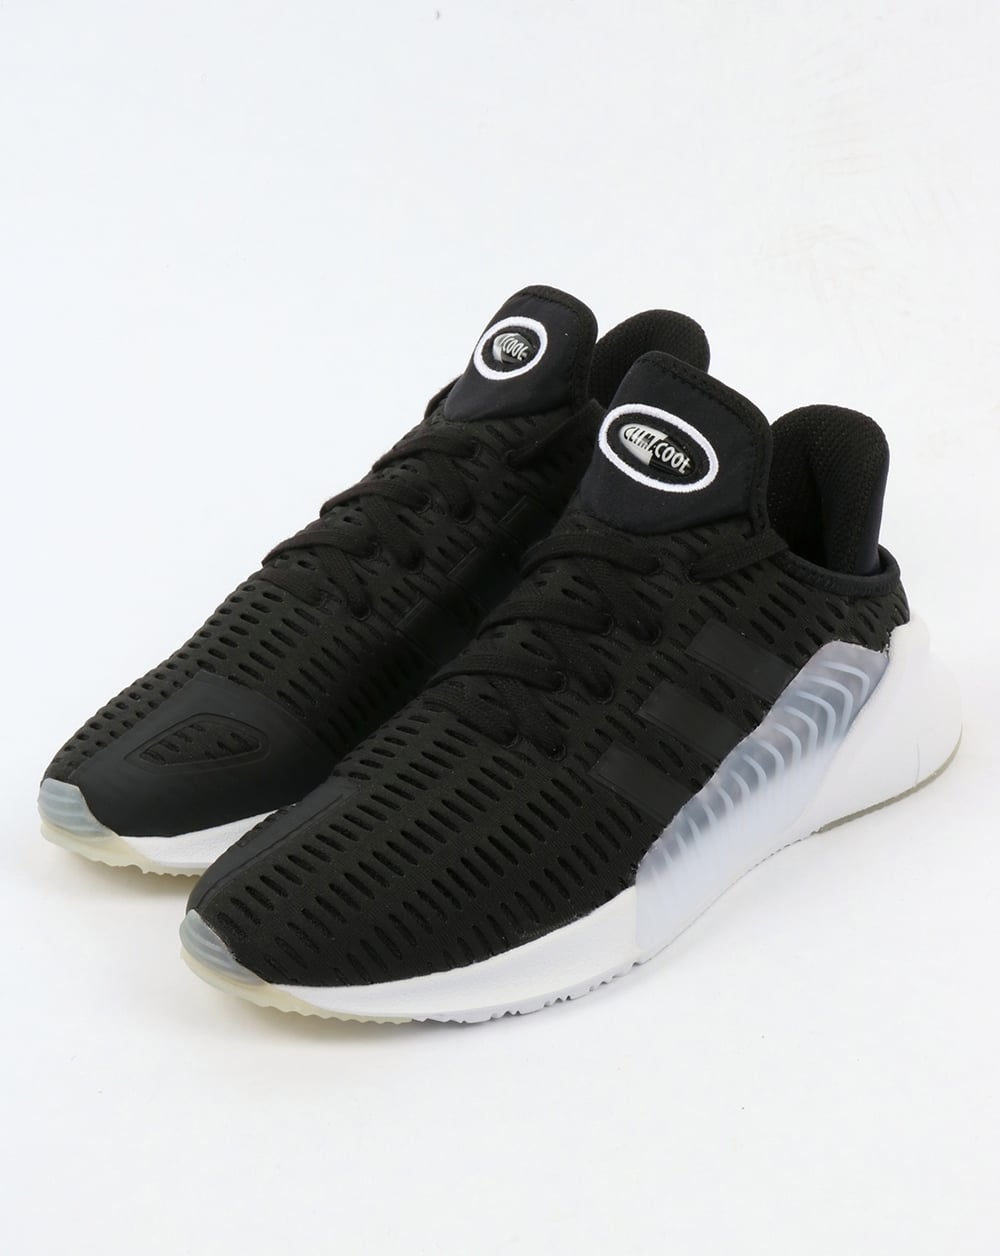 white and black adidas climacool trainers